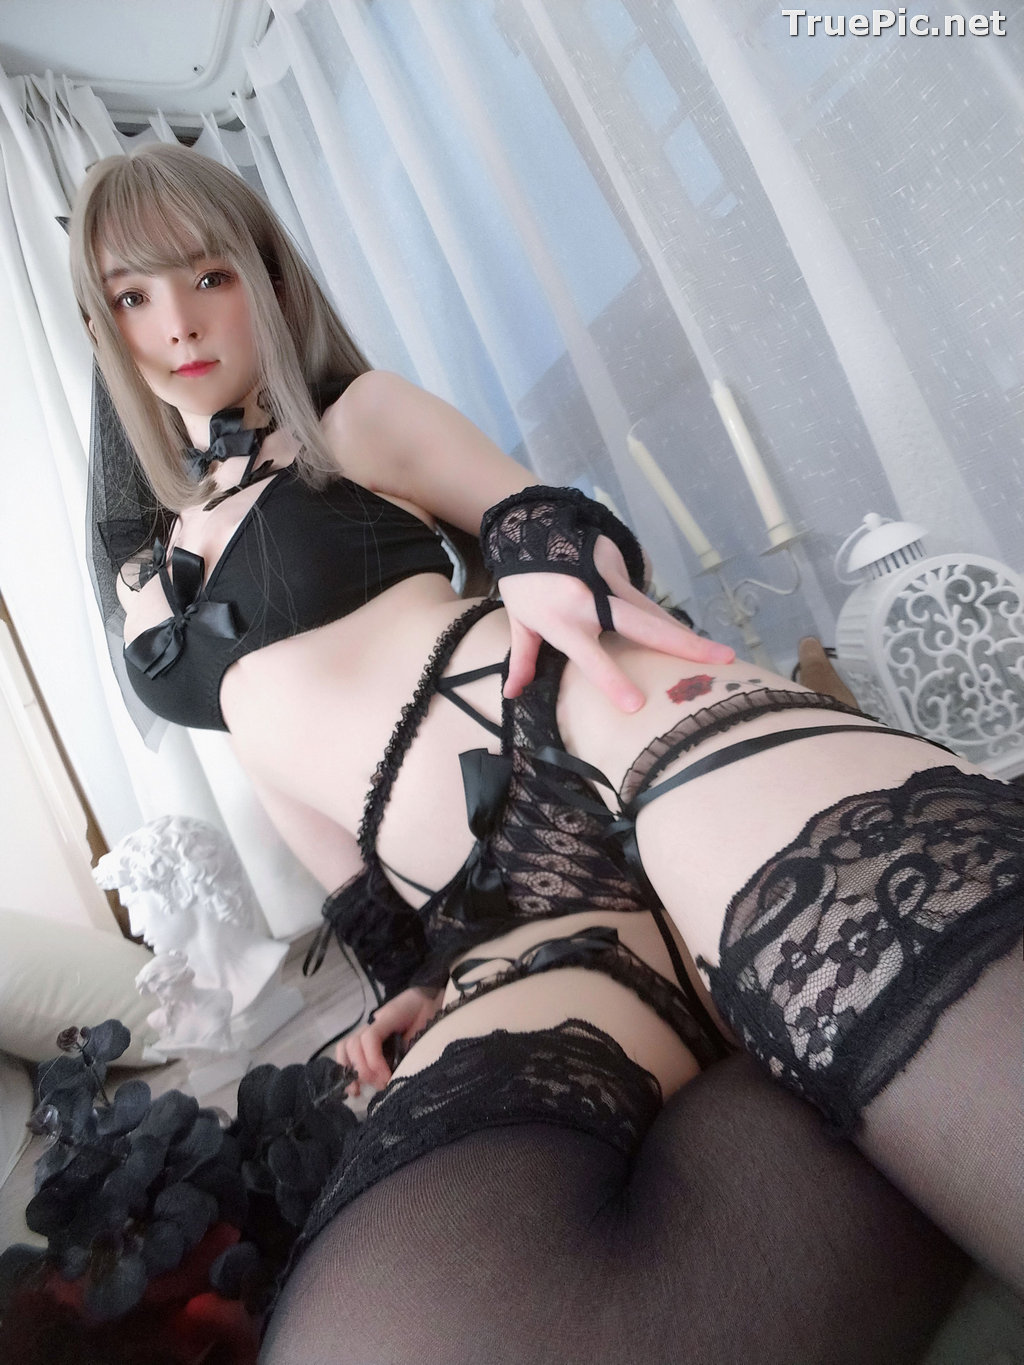 Image Chinese Model - 一小央泽 (Yixiaoyangze) - Sexy Black Rose - TruePic.net - Picture-38